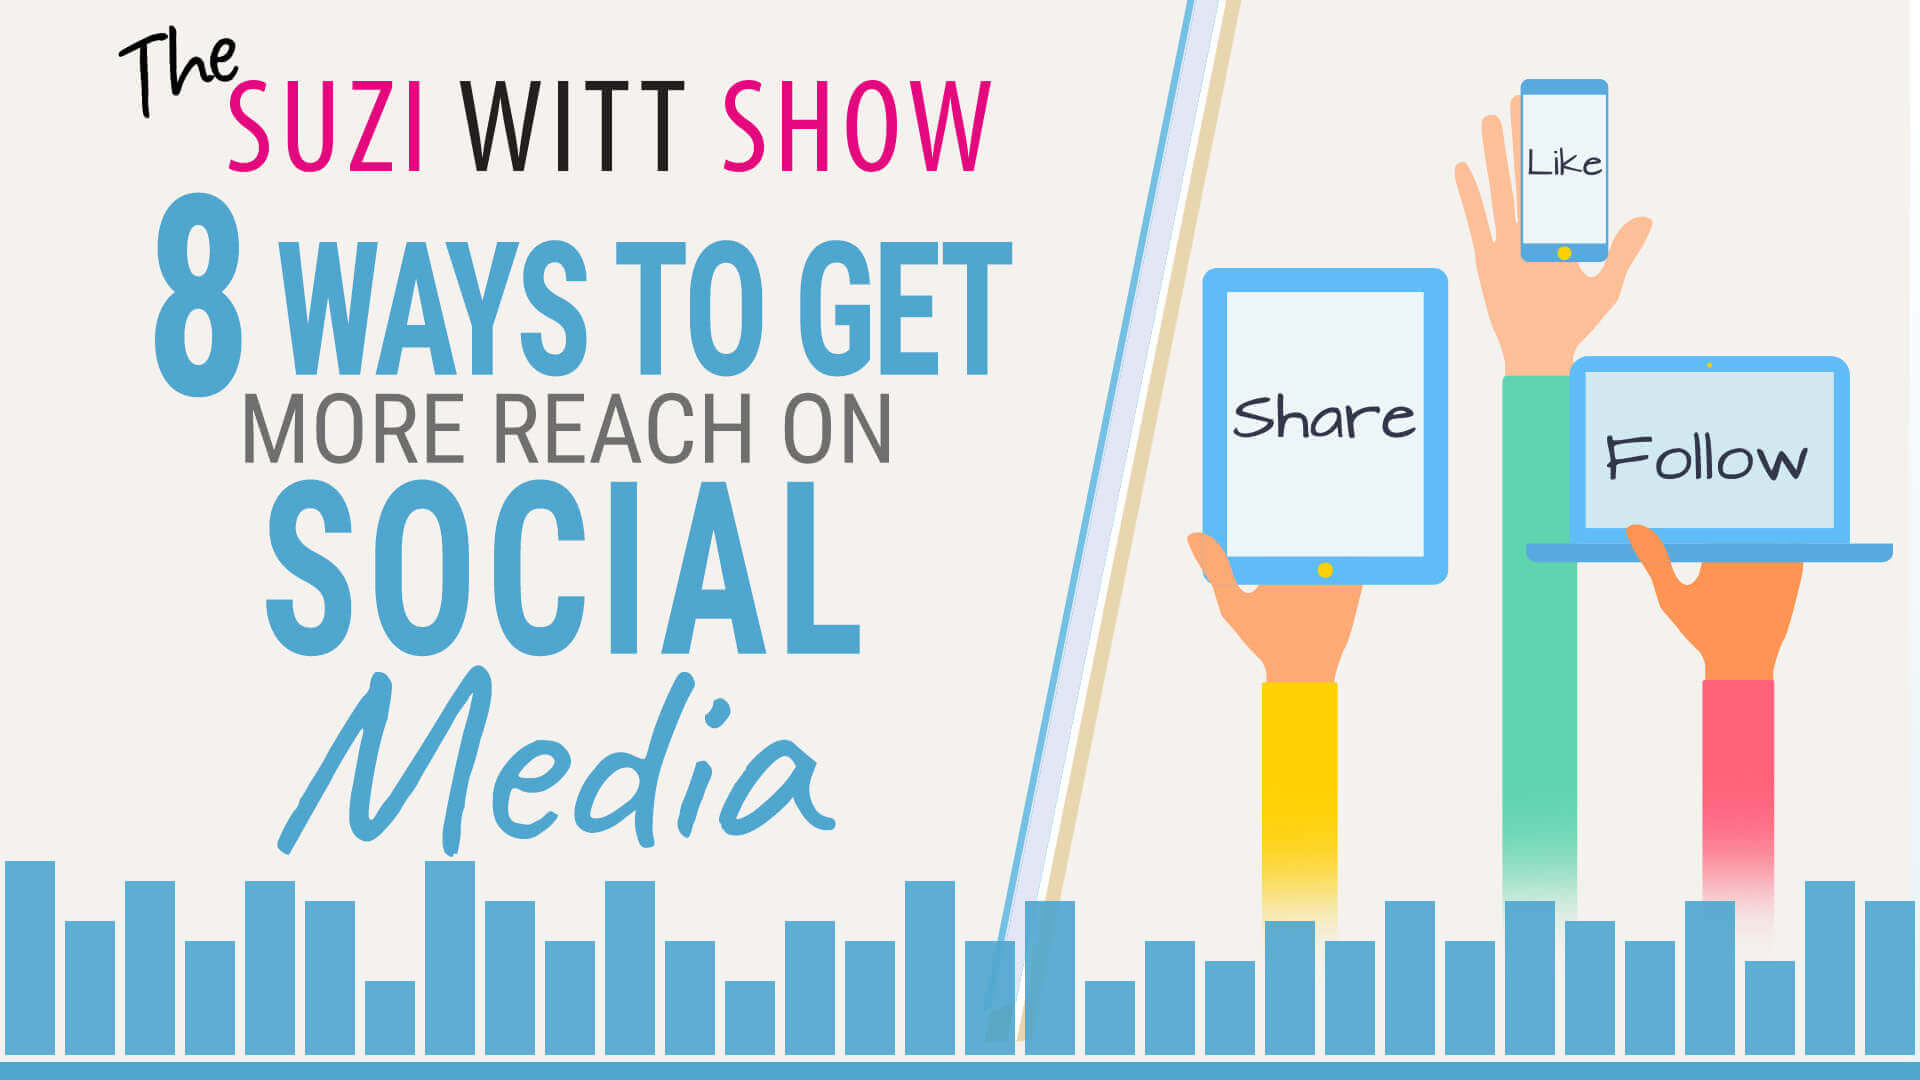 8 ways to get more reach on social media